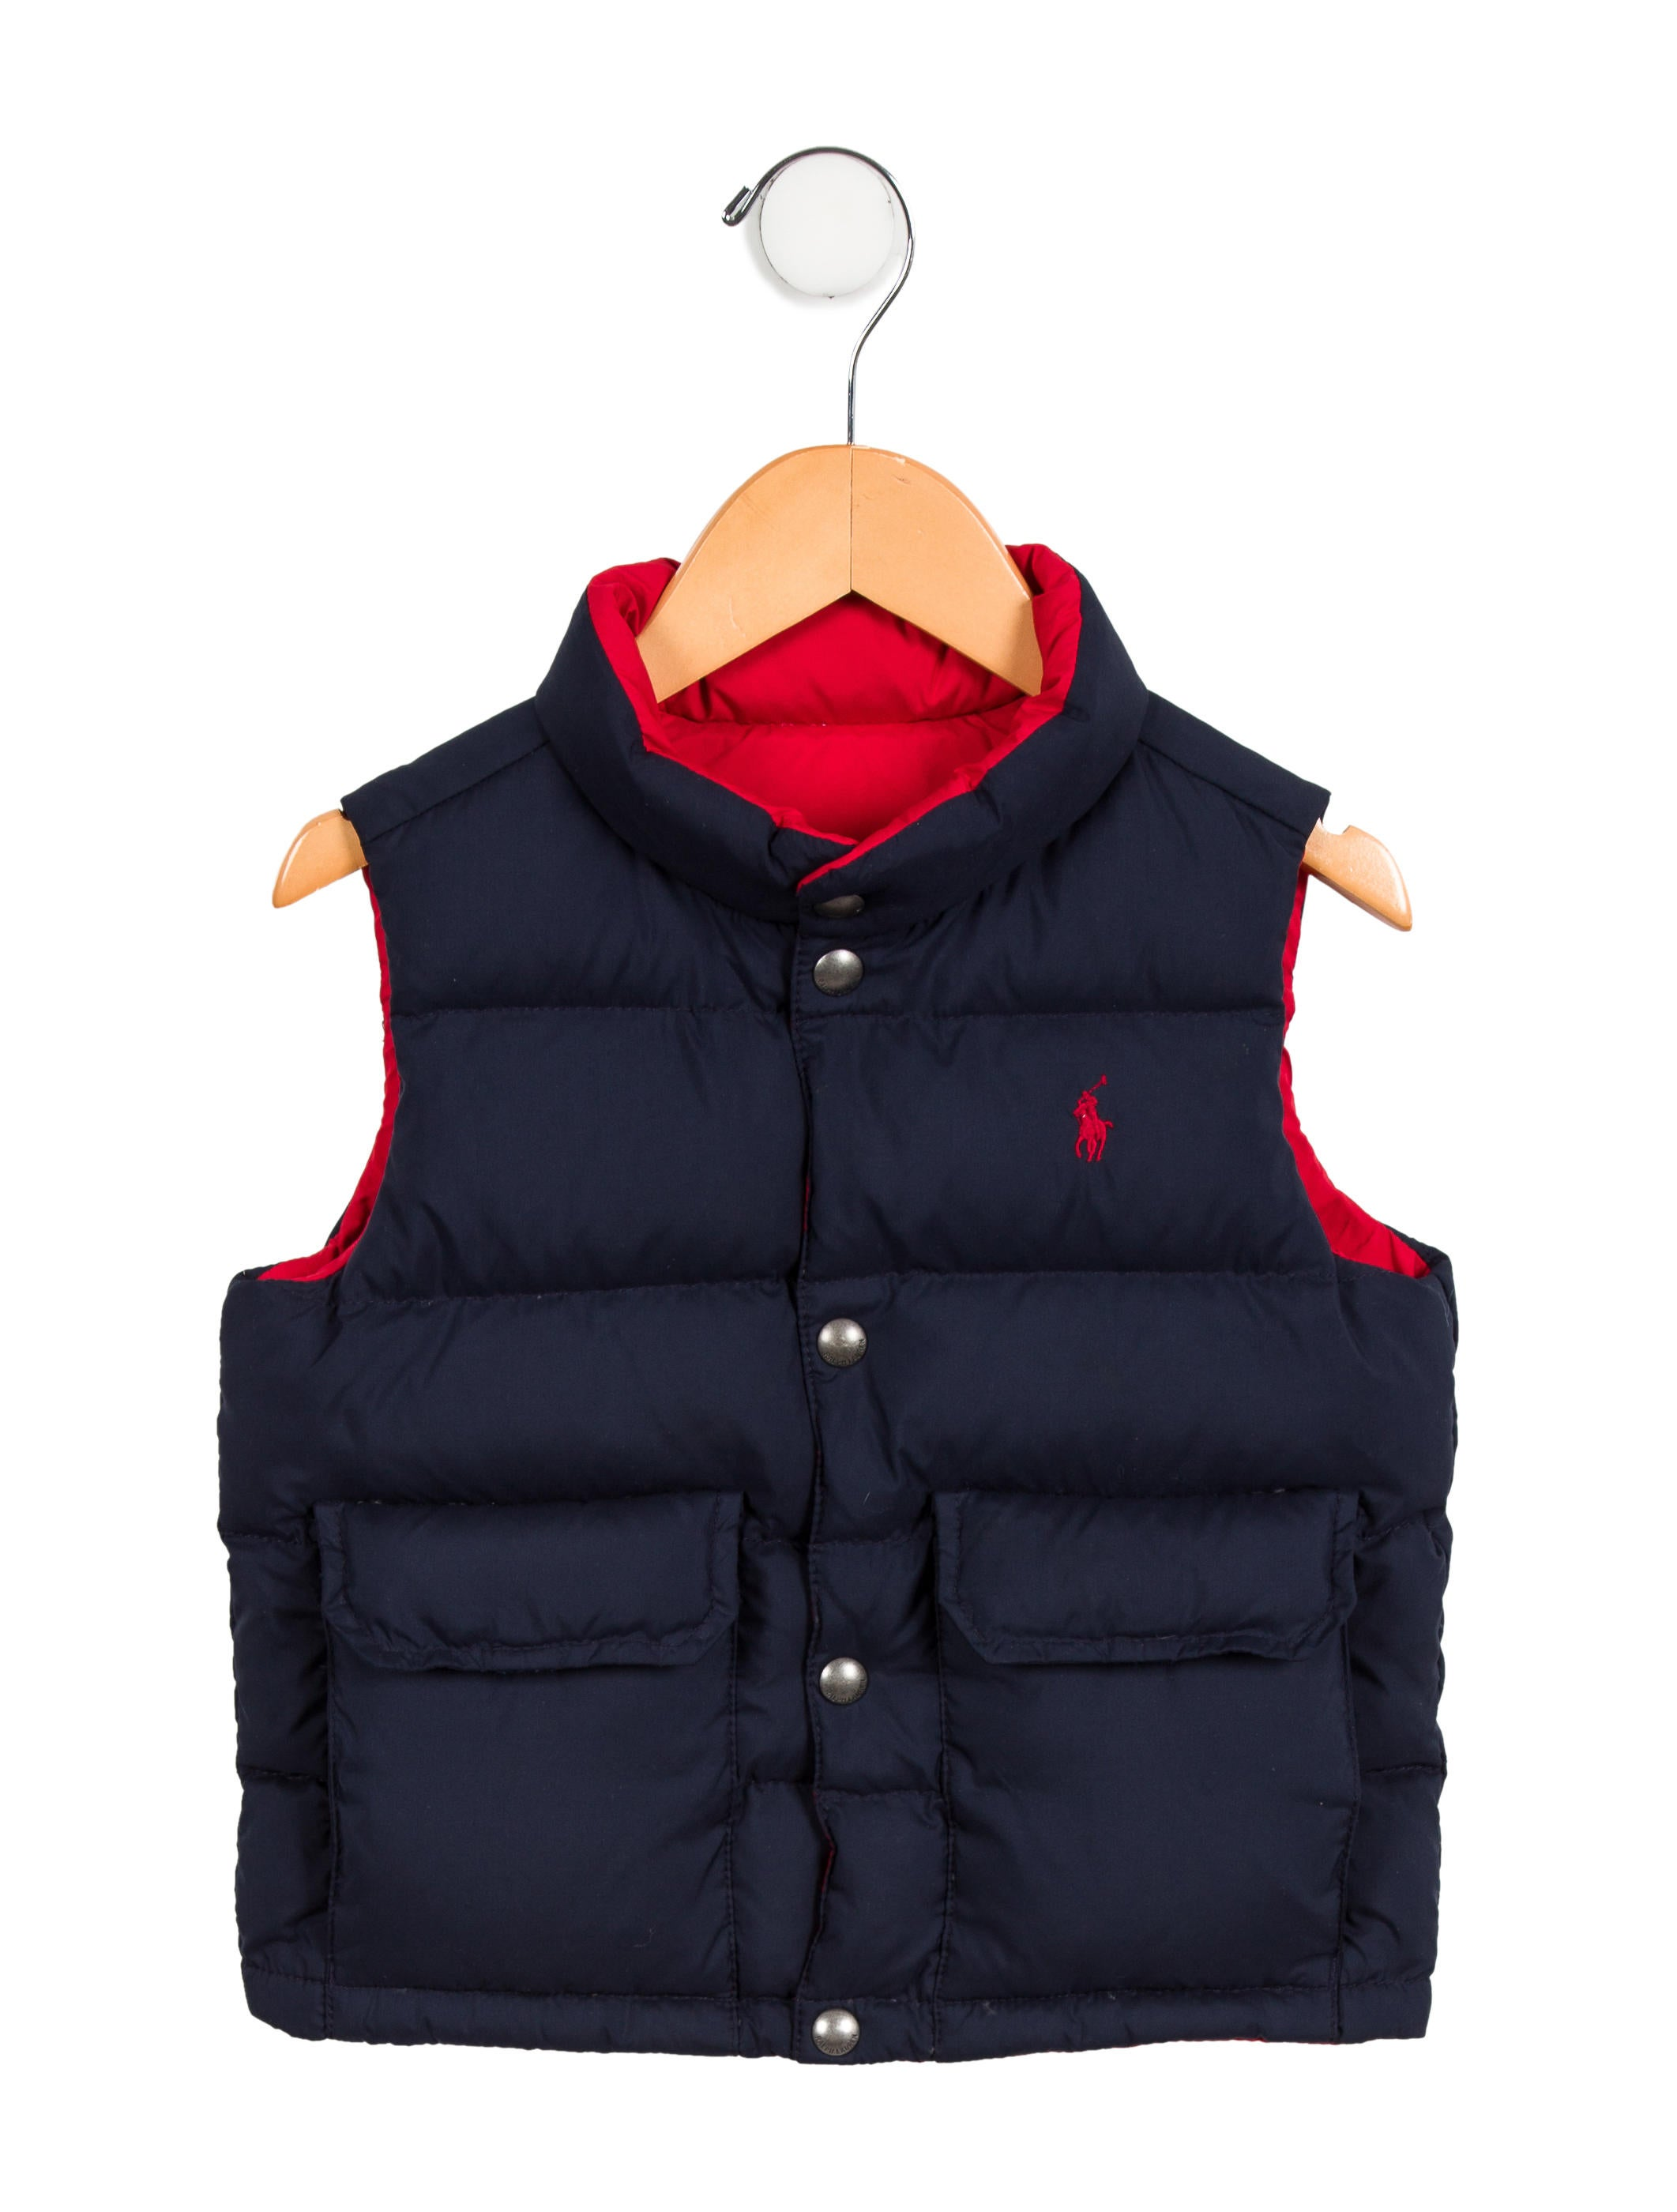 Buy U.S. Polo Assn. Kids Clothing online in India. Huge selection of U.S. Polo Assn. Kids Clothing at needloanbadcredit.cf All India FREE Shipping. Cash on Delivery available.